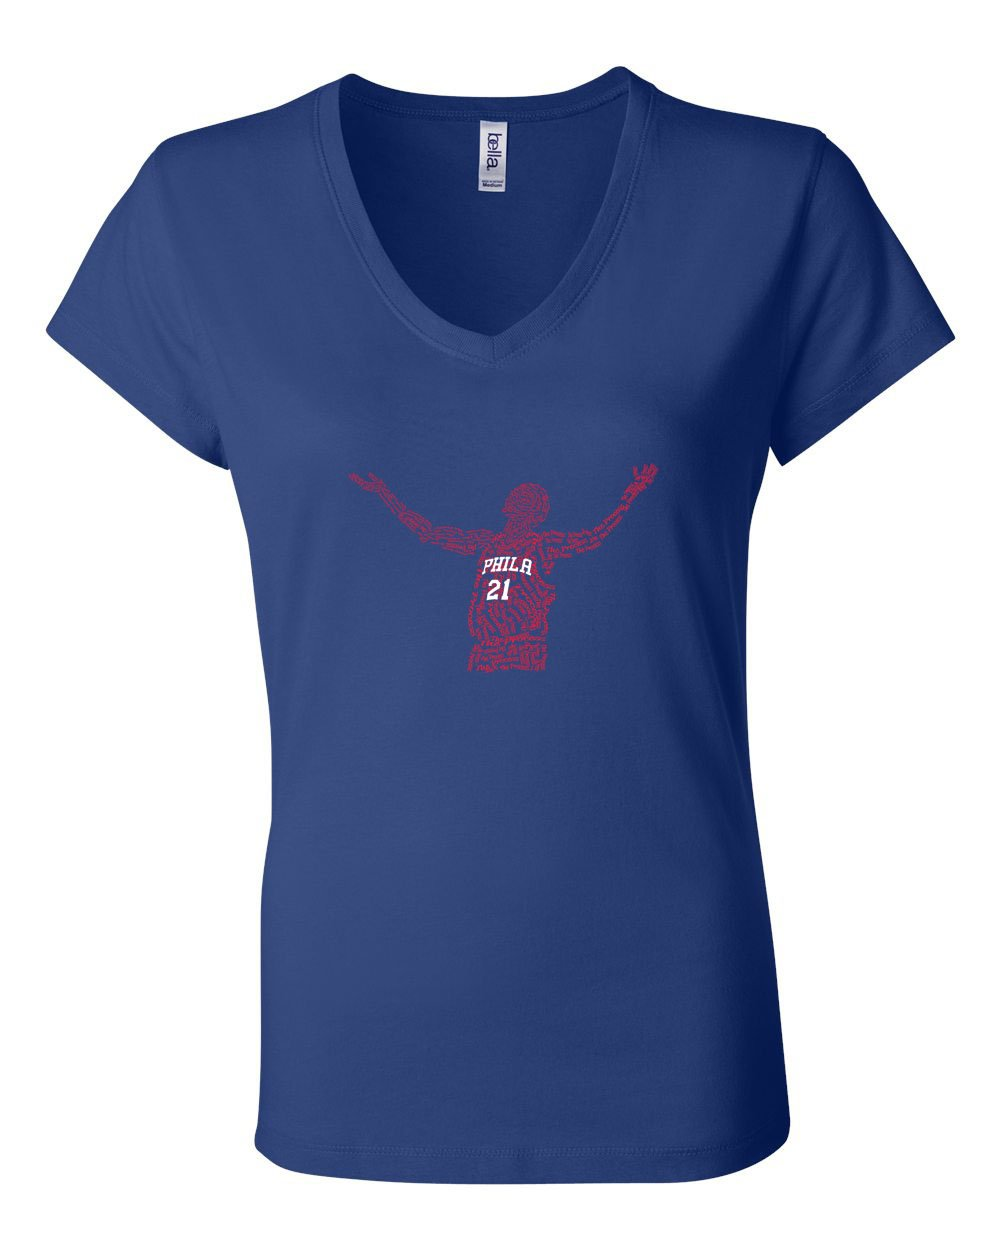 The Process LADIES Junior Fit V-Neck